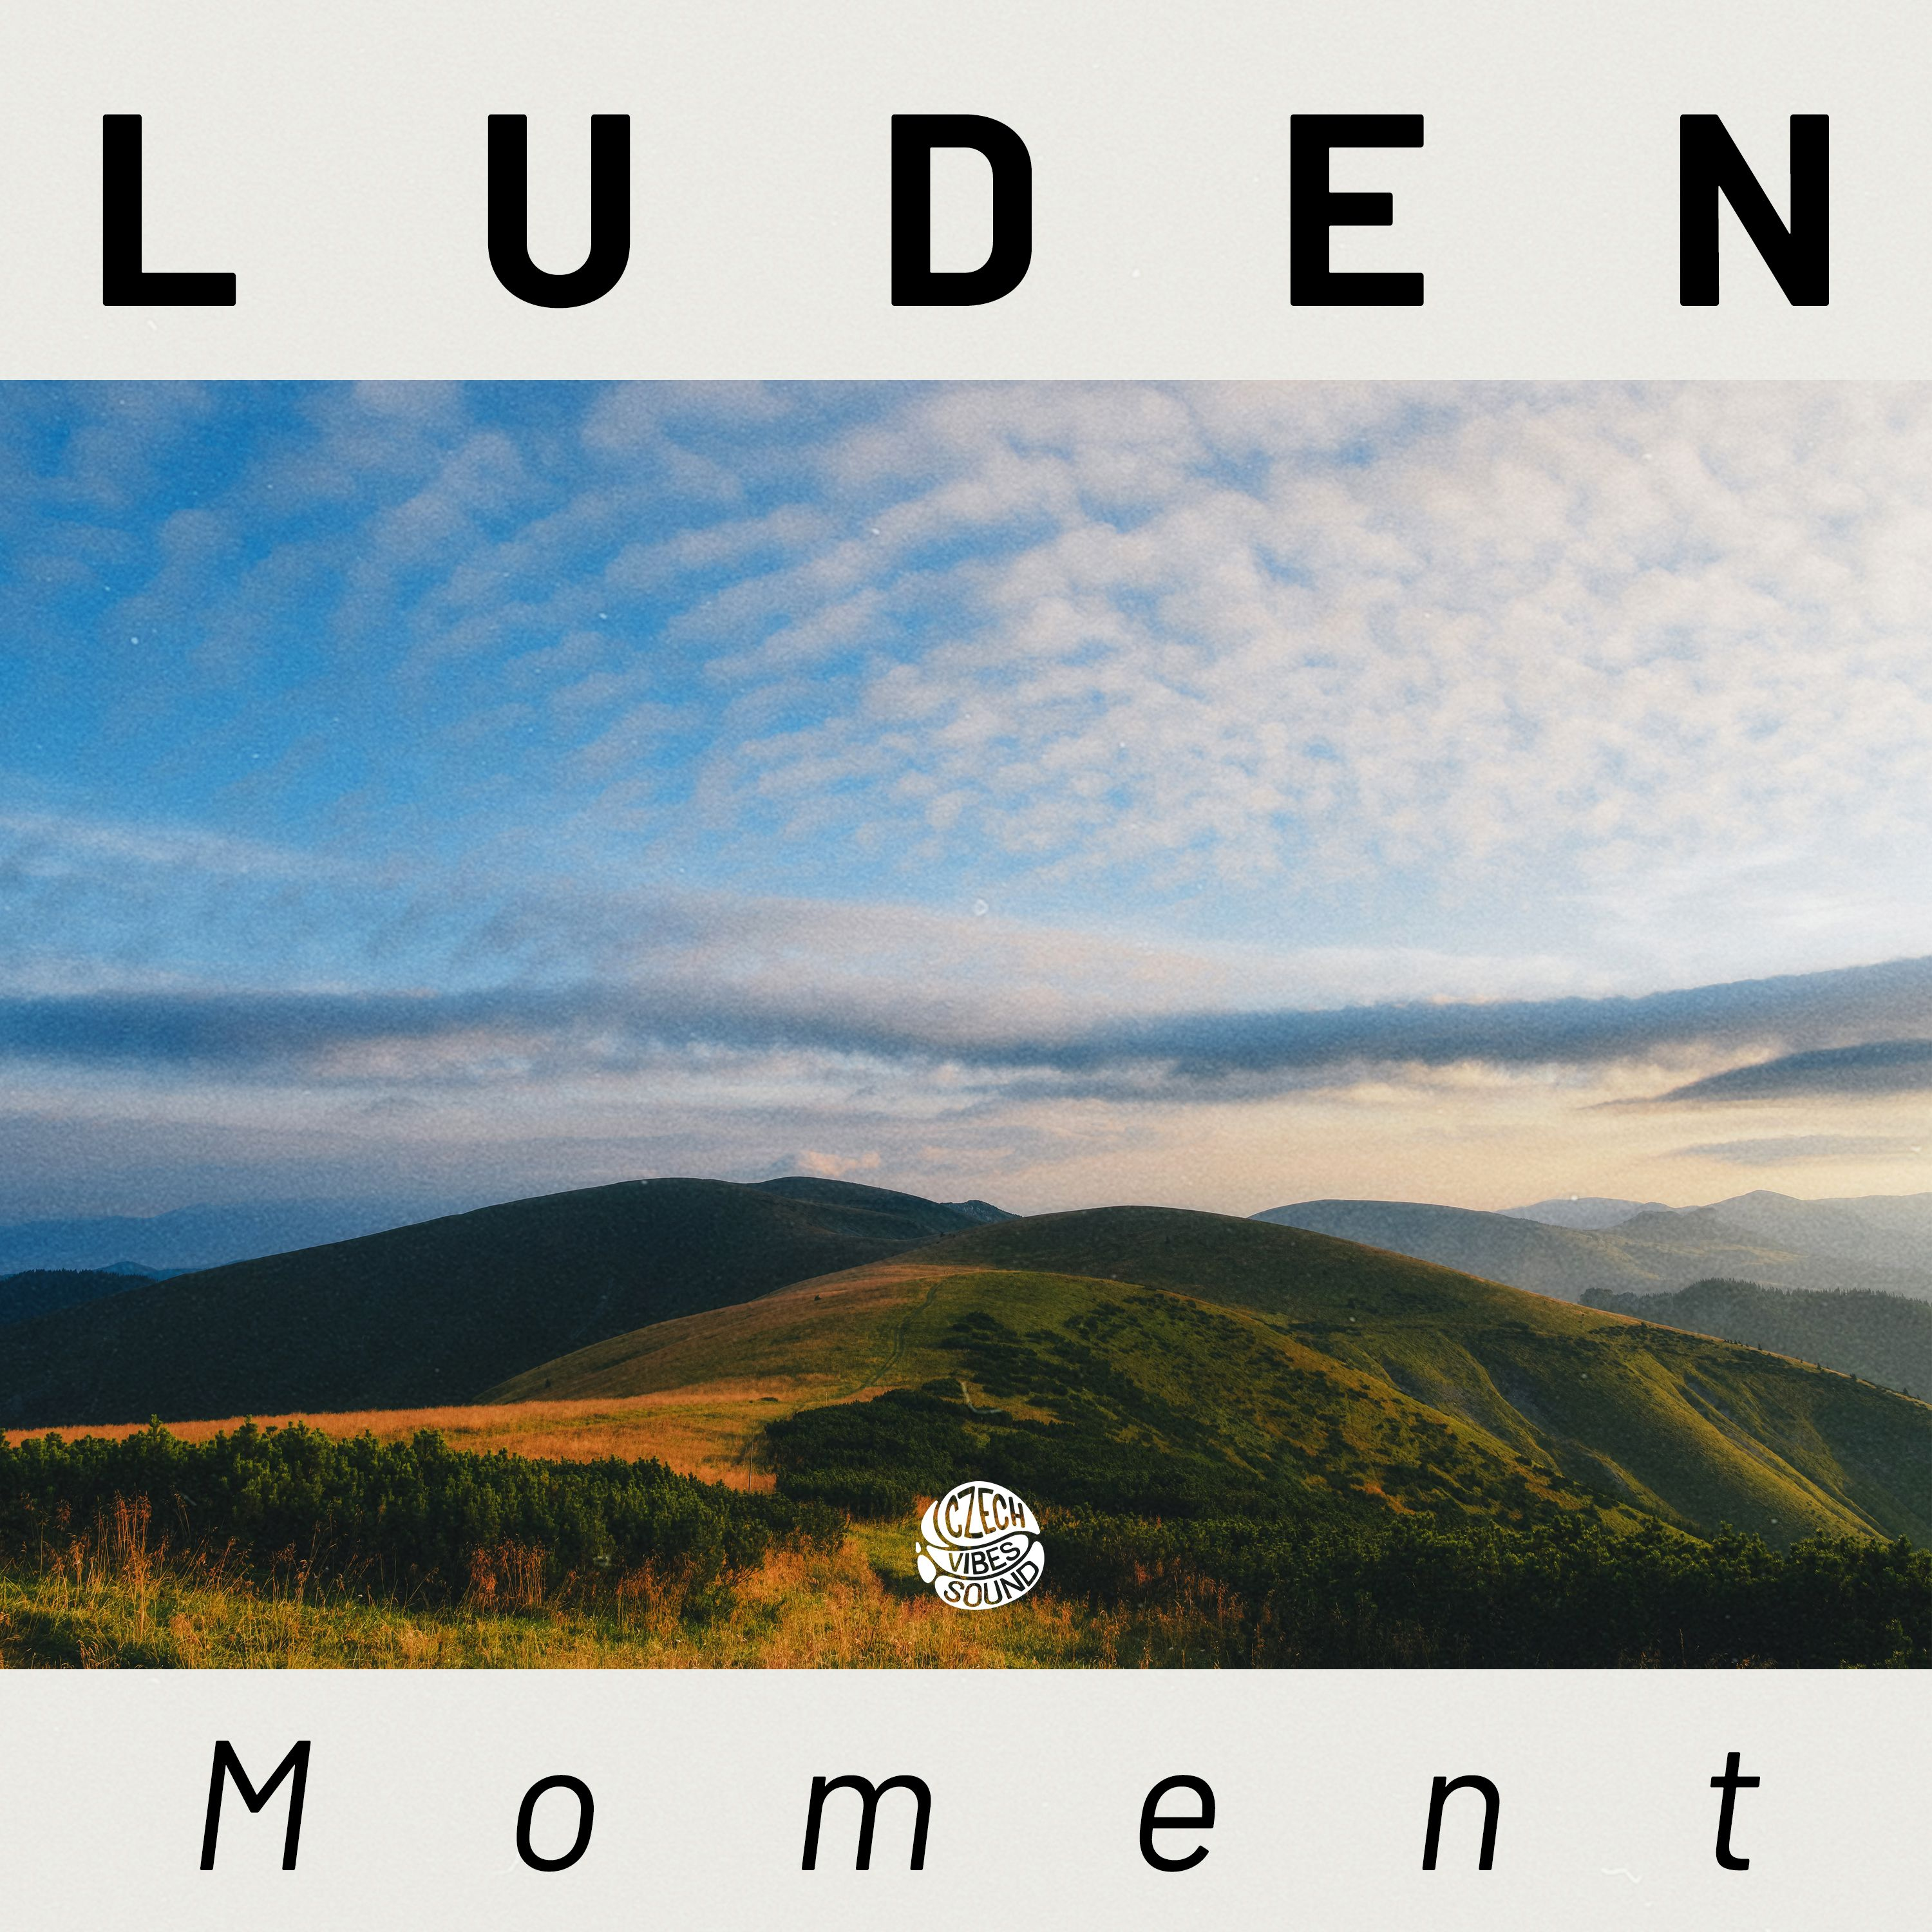 Luden - Moment